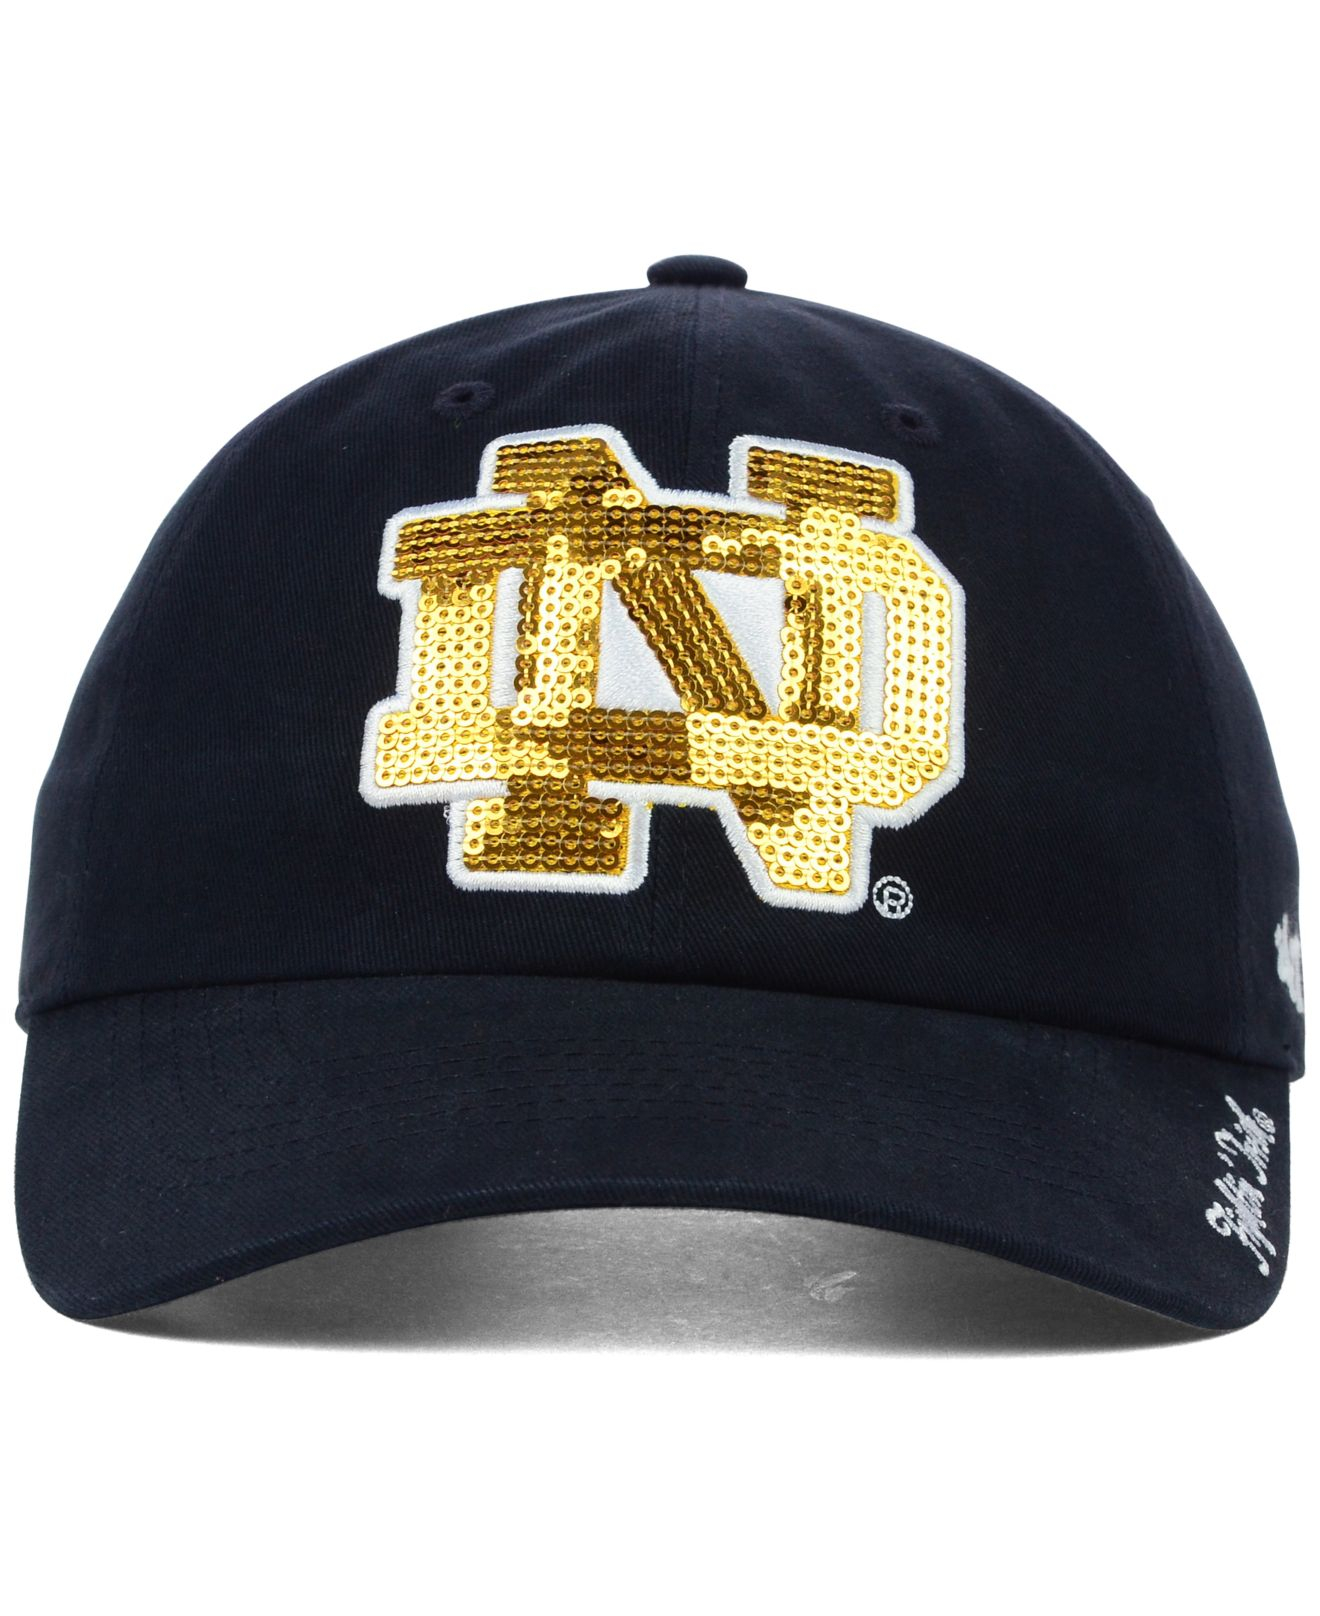 Lyst - 47 Brand Women s Notre Dame Fighting Irish Natalie Sparkle ... 18c3a6d9149